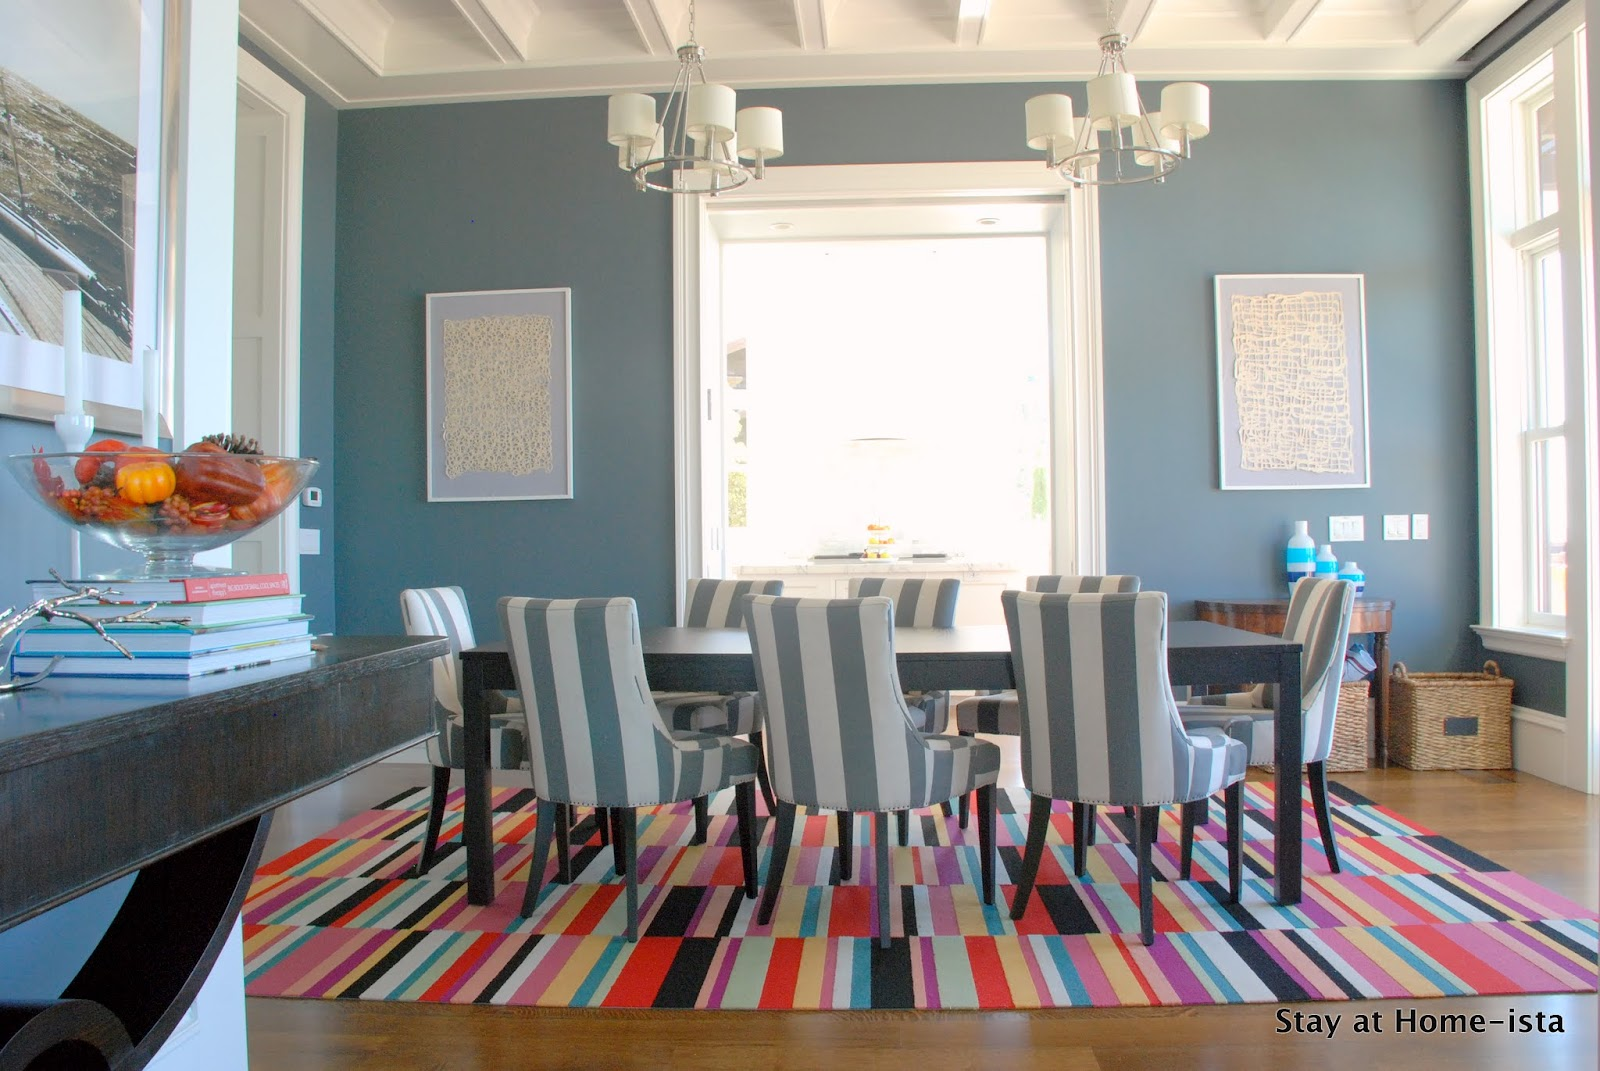 stay at home-ista: rainbow stripes for the dining room rug